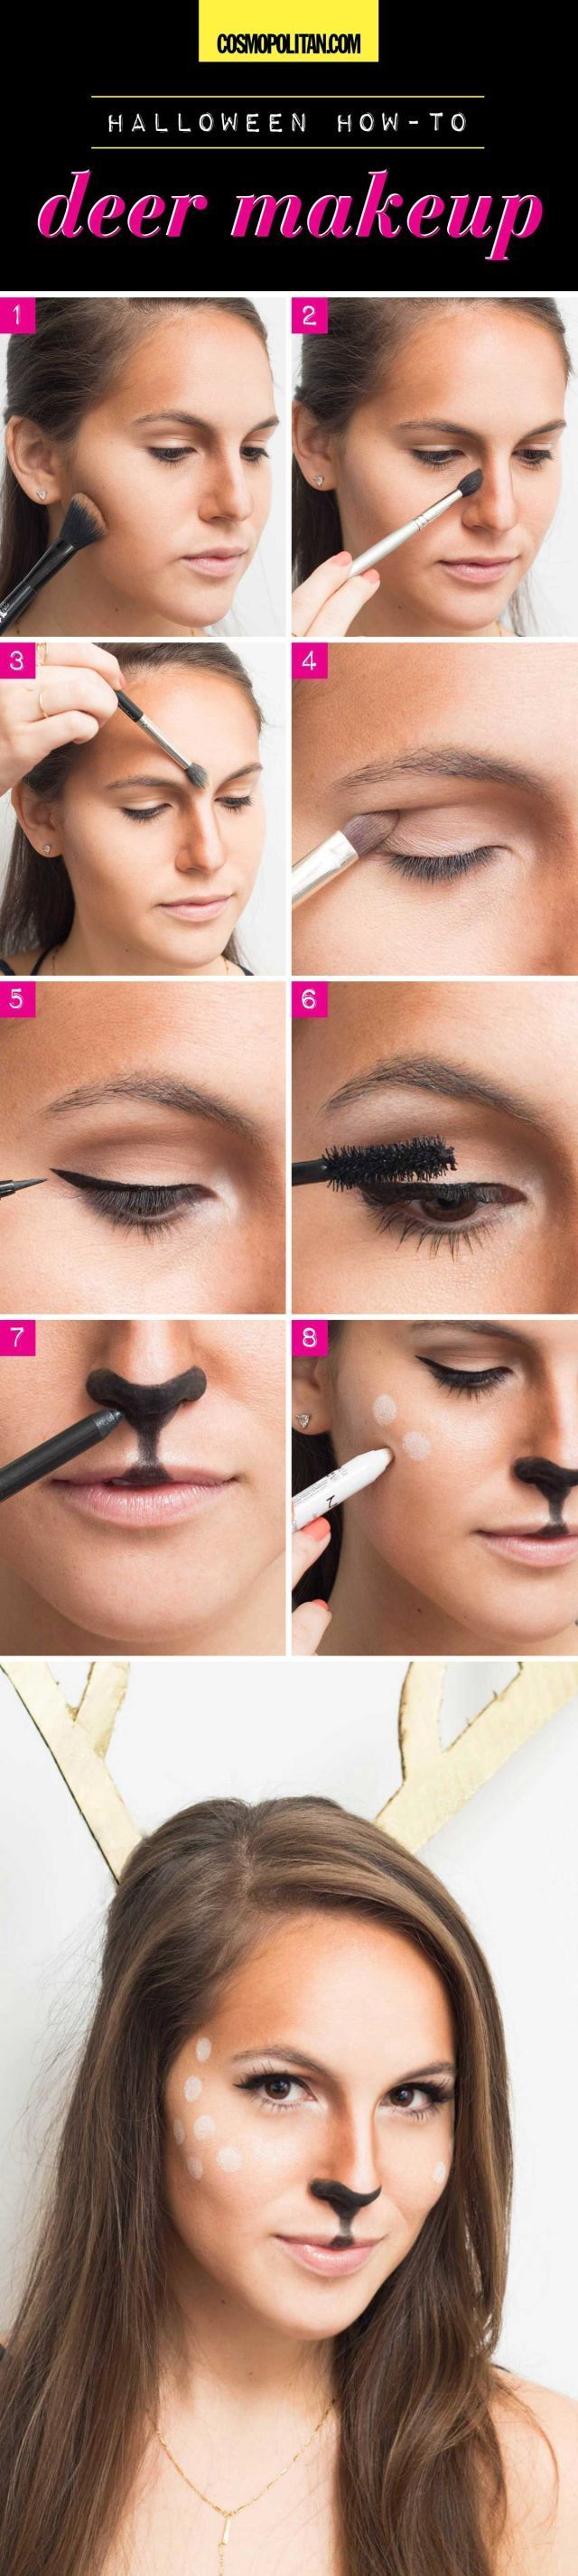 Halloween How-to: Deer Makeup: